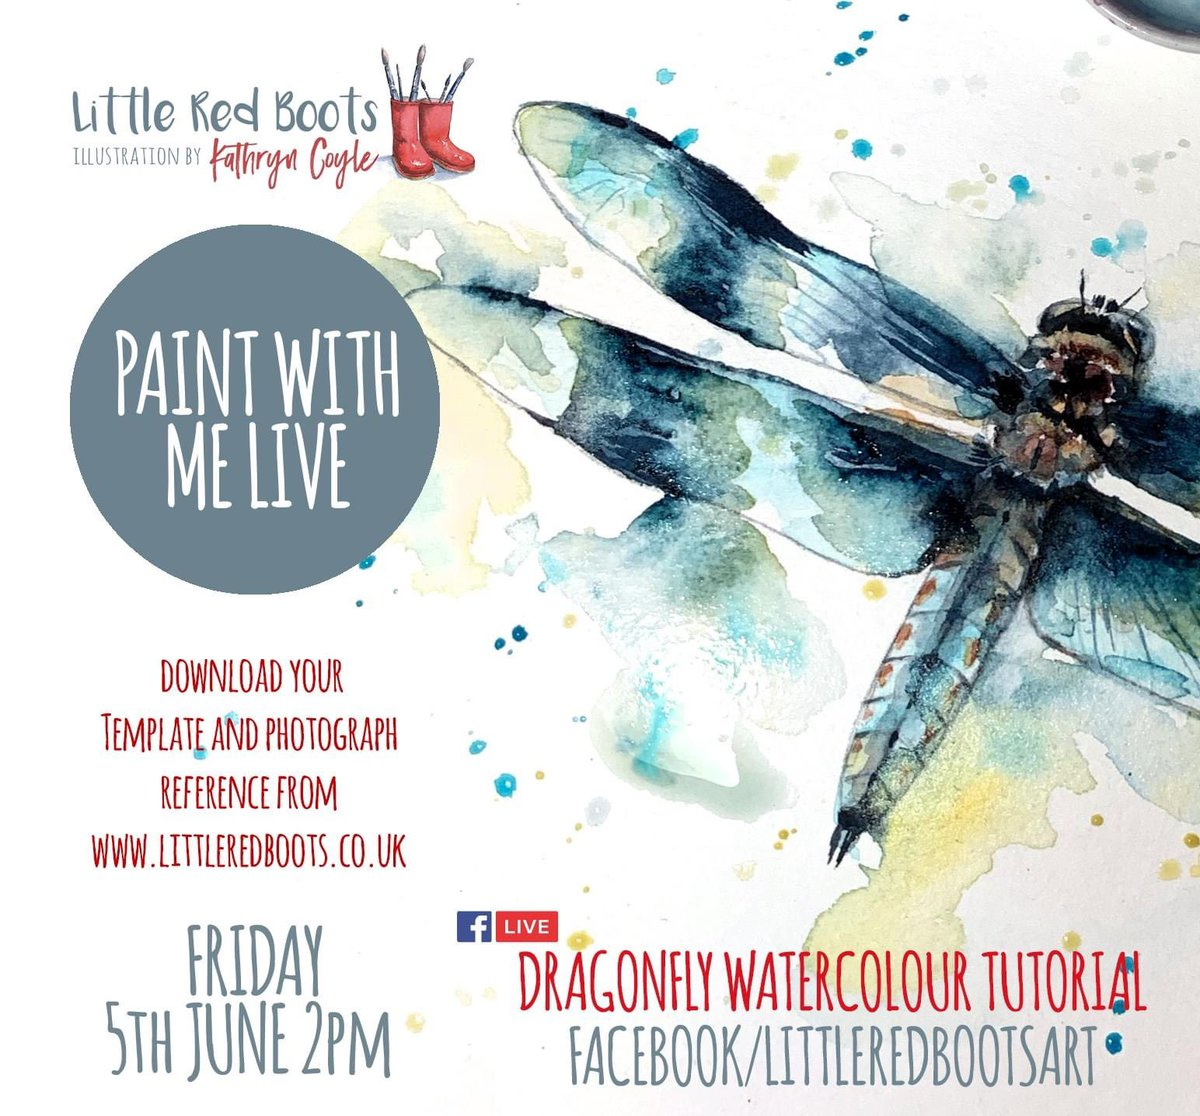 Paint with me live tomorrow on facebook at 2pm  http://www.littleredboots.co.uk/tutorials.html for more info #dragonfly  #learntopaint #watercolorpainting #watercolours #watercolor_guide #artlesson #artistsoninstagram #watercolourtutorial #homeschoolsupport #artlessononline #artonlinepic.twitter.com/6LRRq178Zg